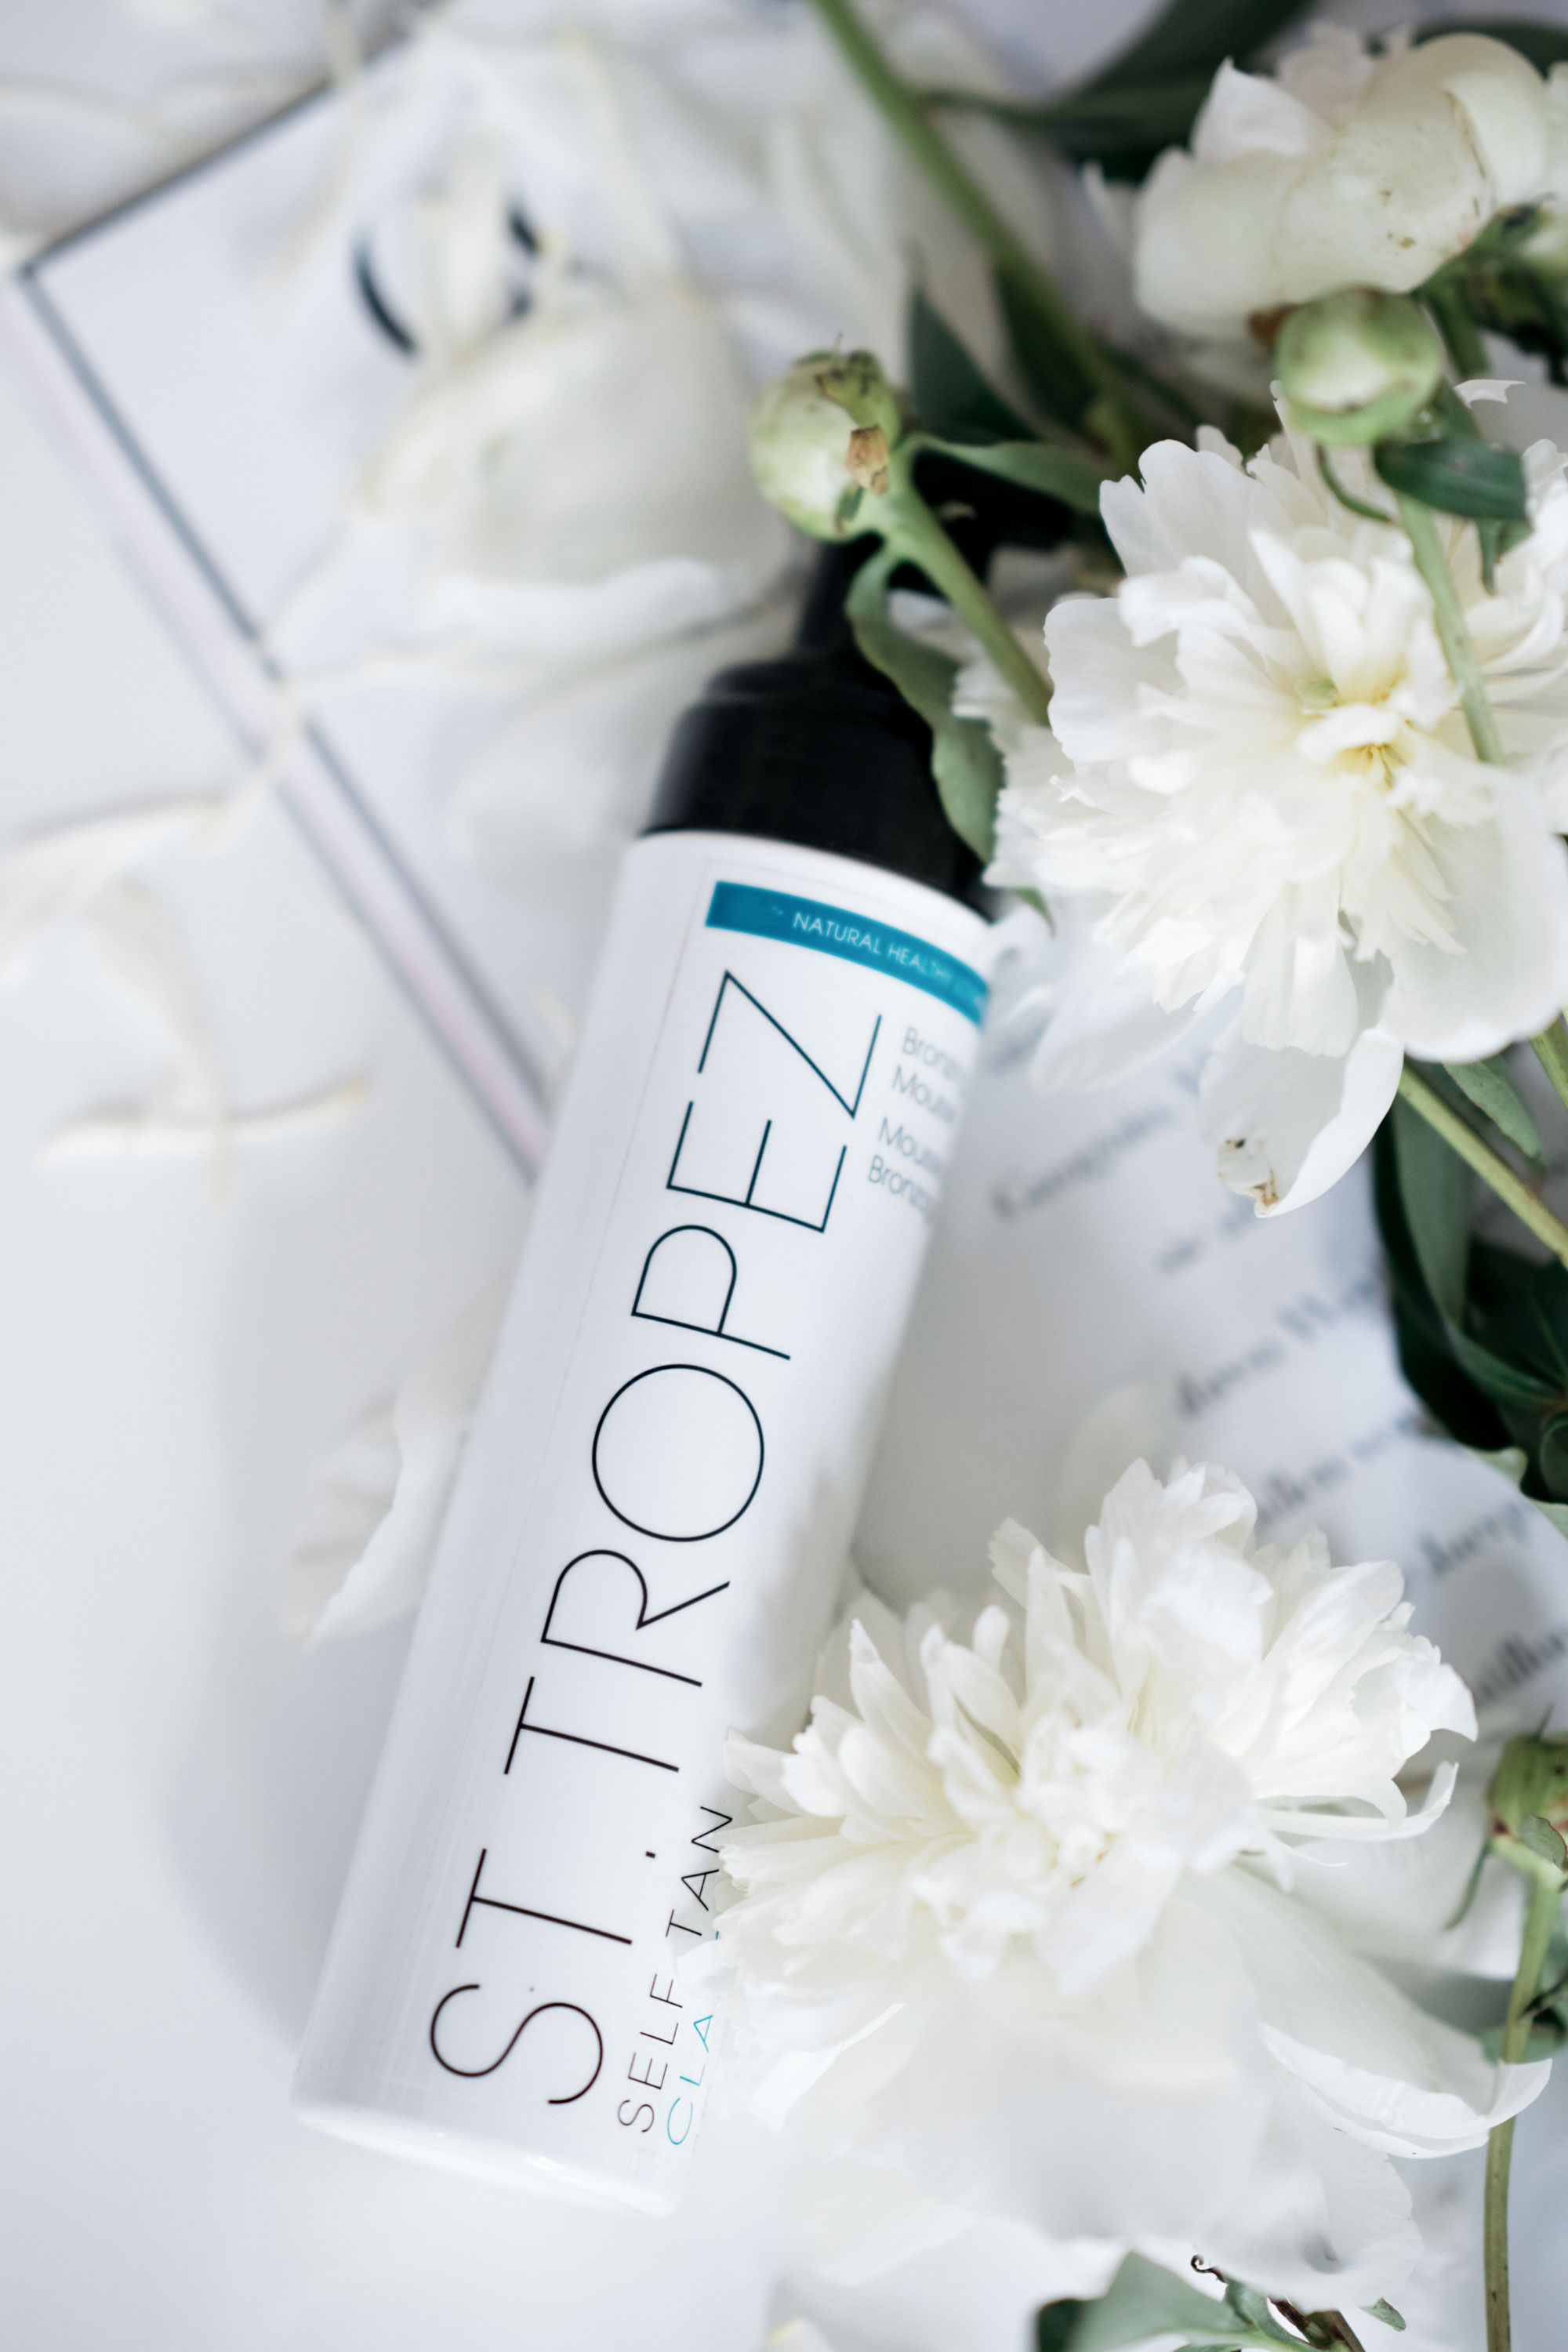 St.Tropez self tanning mousse